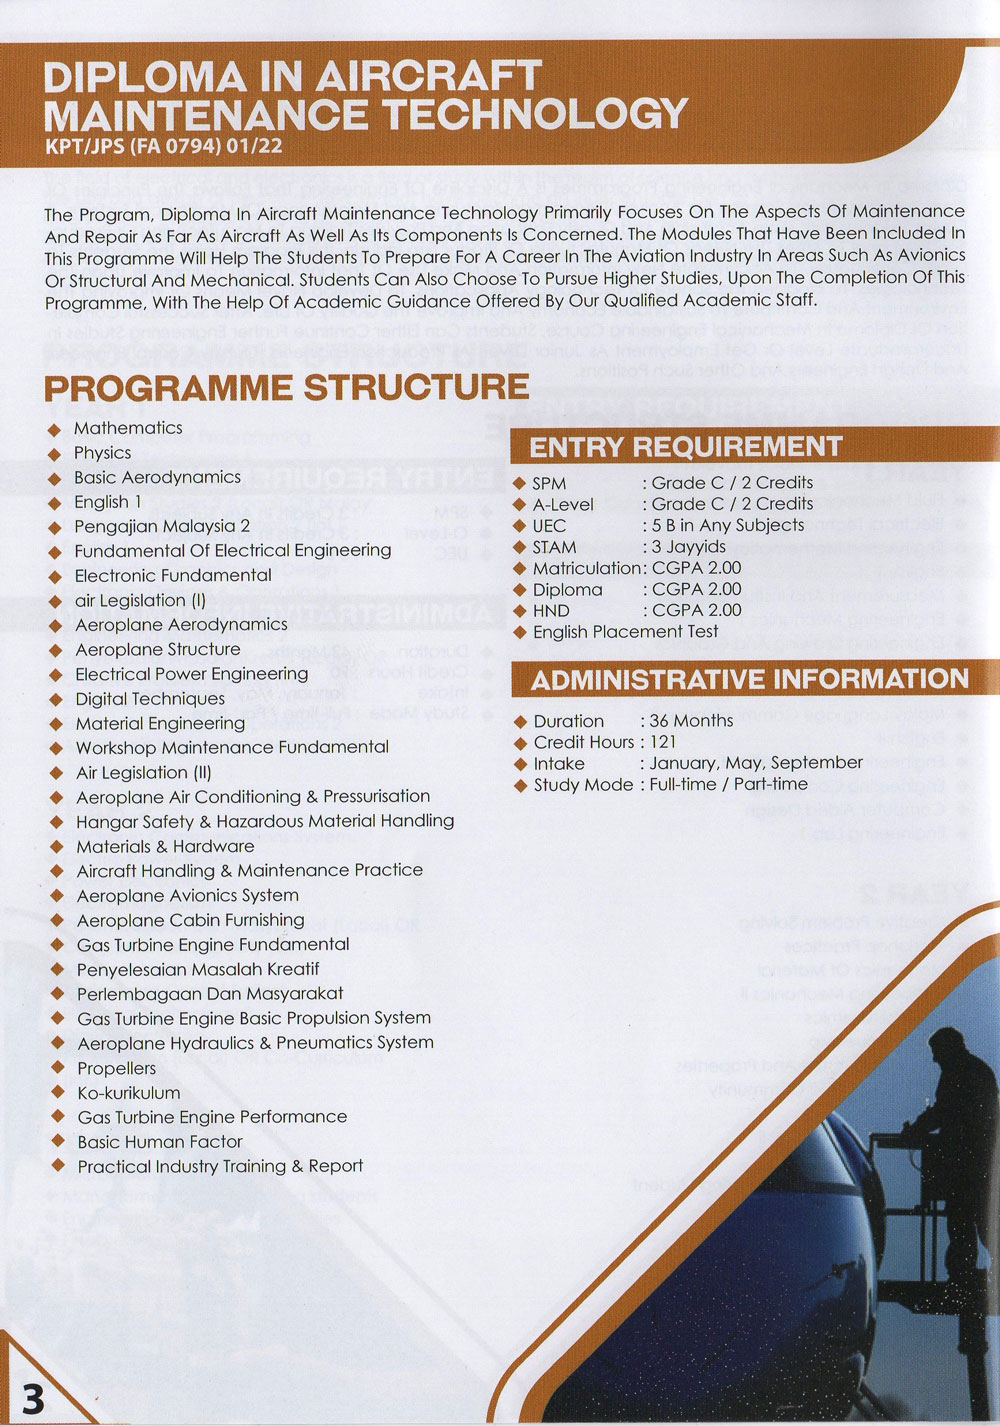 Diploma-In-Aircraft-Maintenance-Technology-Lincoln-University-College